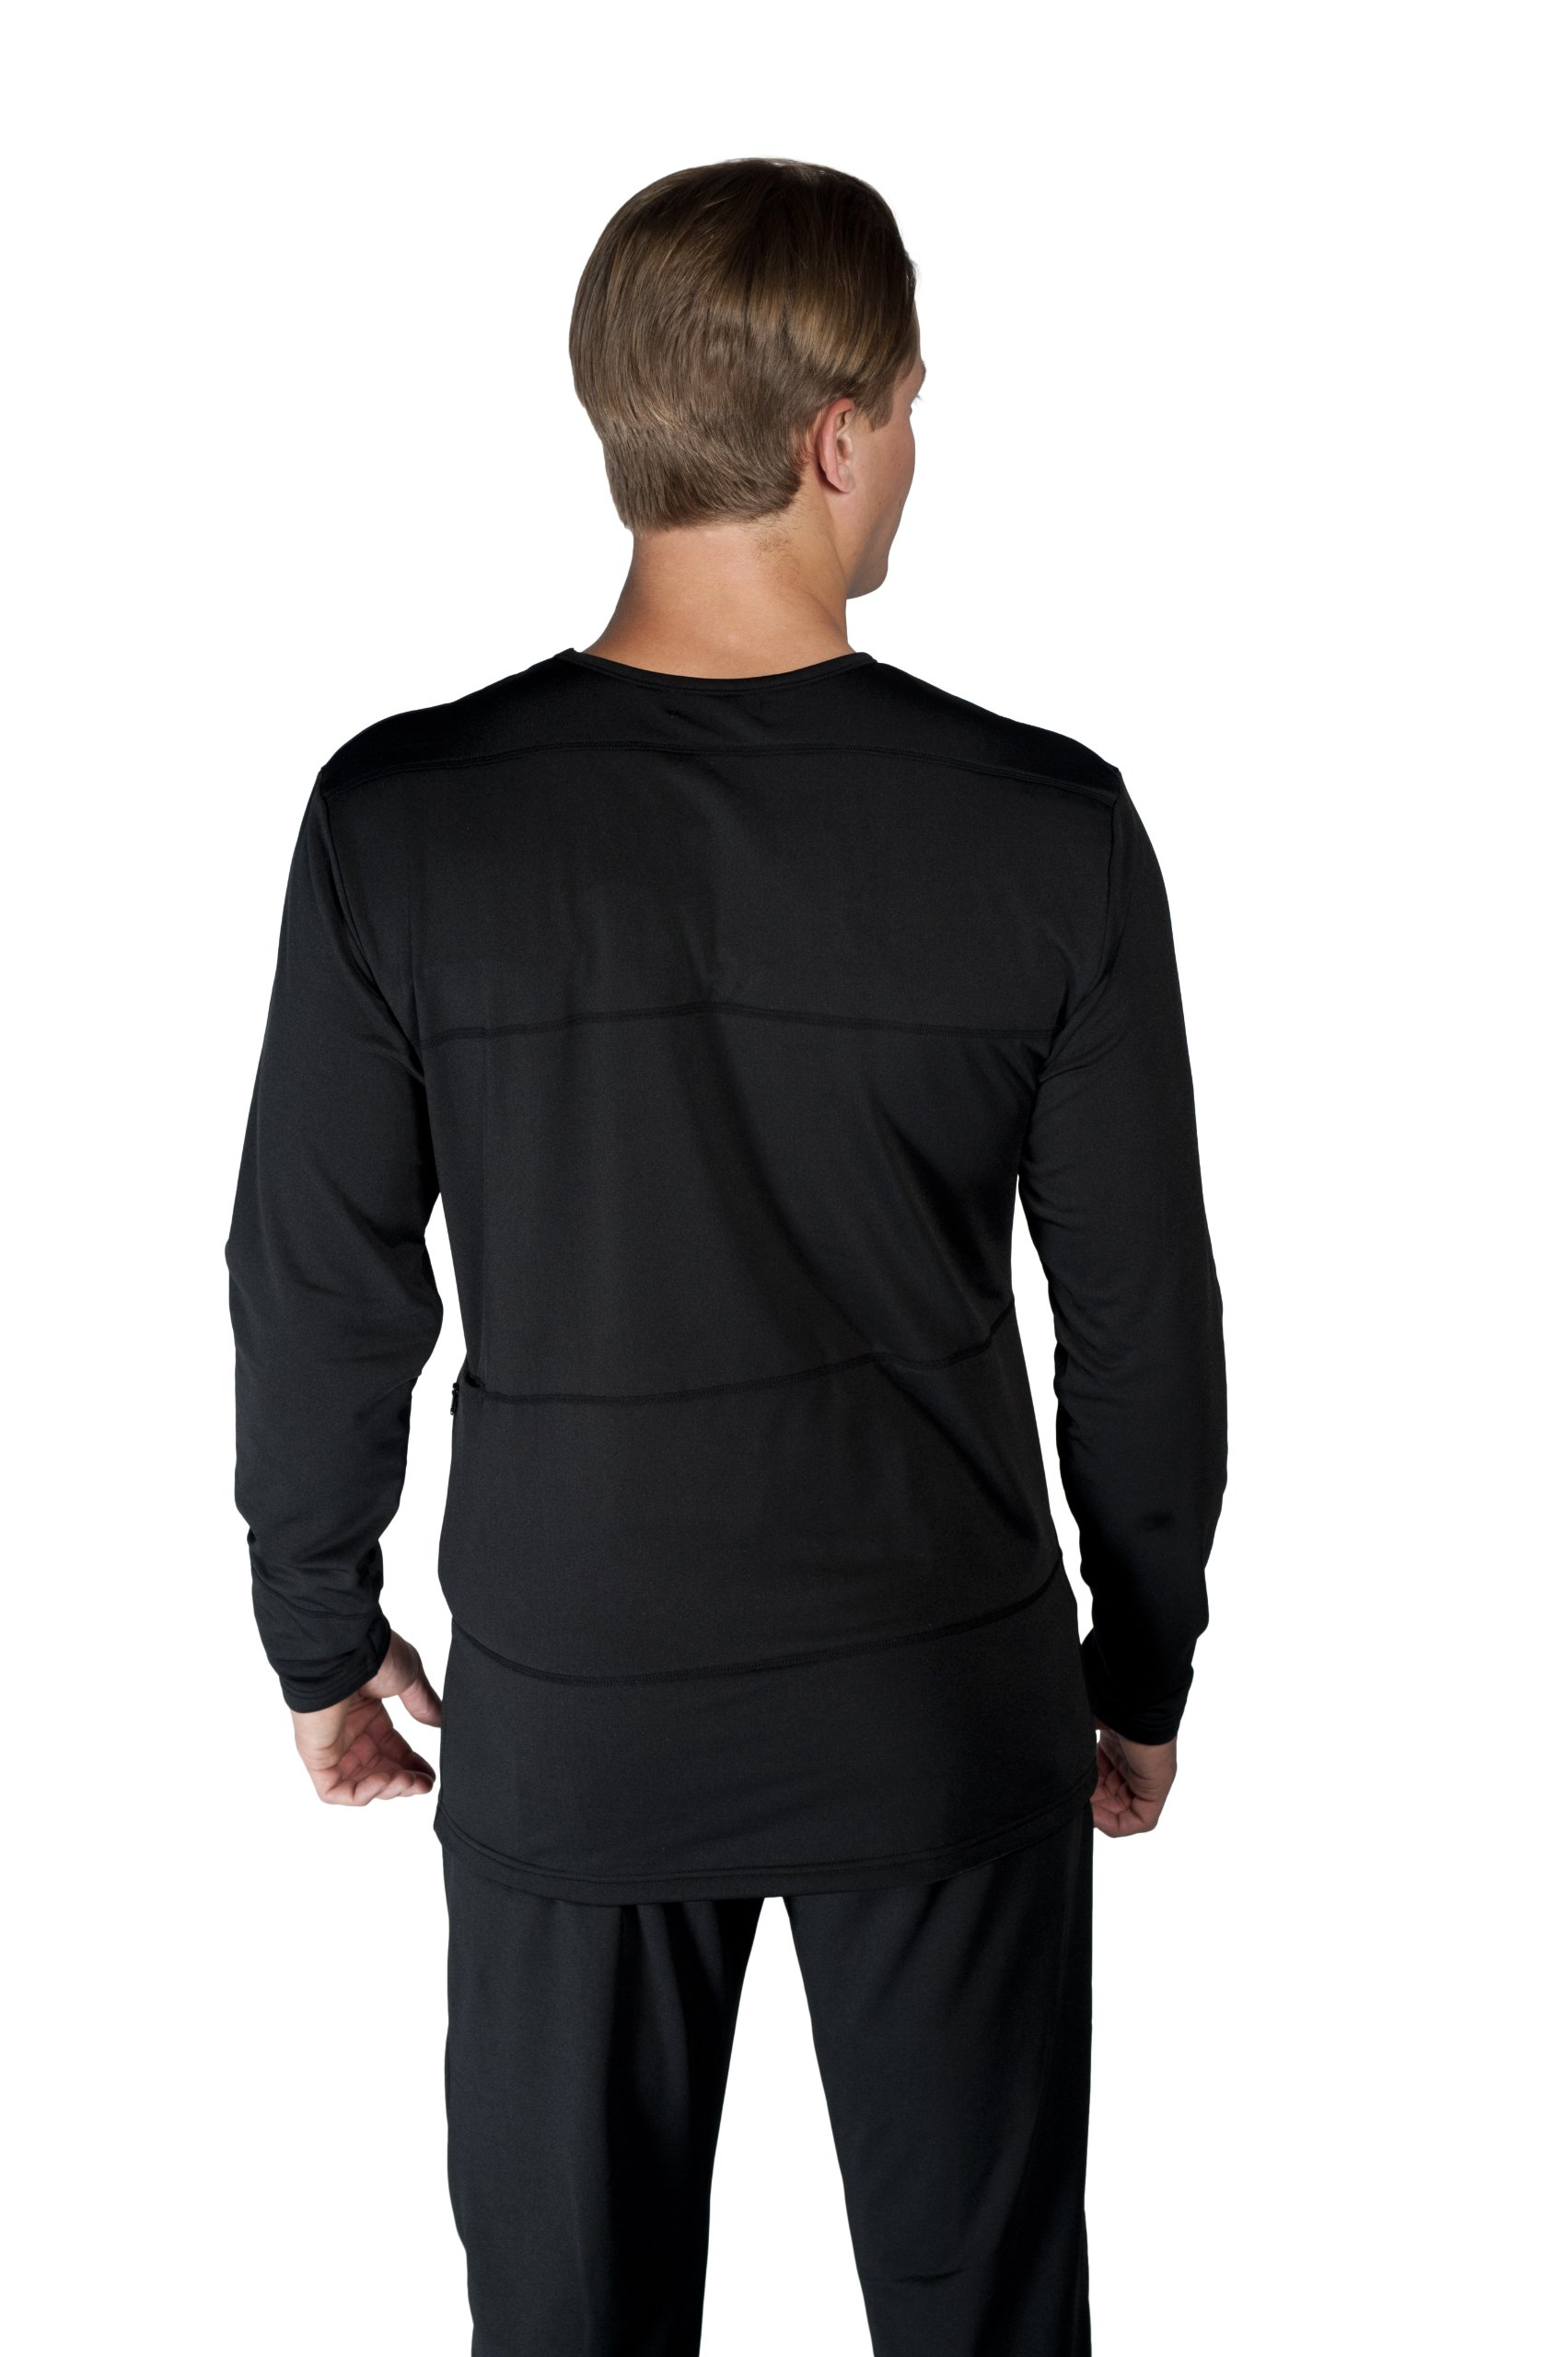 VentureHeat Battery Heated Base Layer Top with Tri-Zone Heating Area (Black, X-Large) by Venture Heat (Image #2)